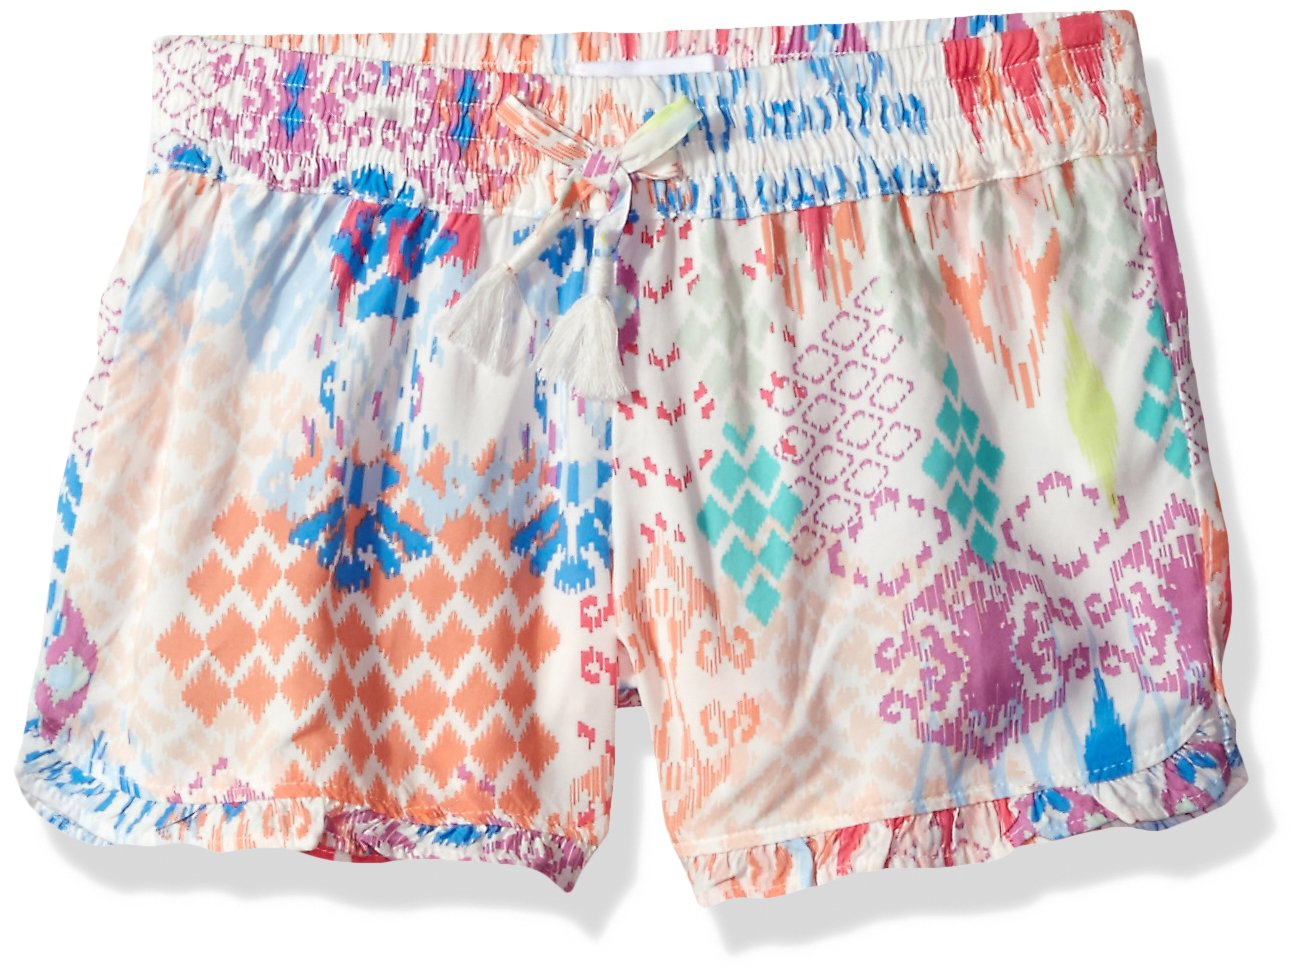 The Children's Place Toddler Girls' Printed Soft Short, Snow 81819, L (10/12) by The Children's Place (Image #1)